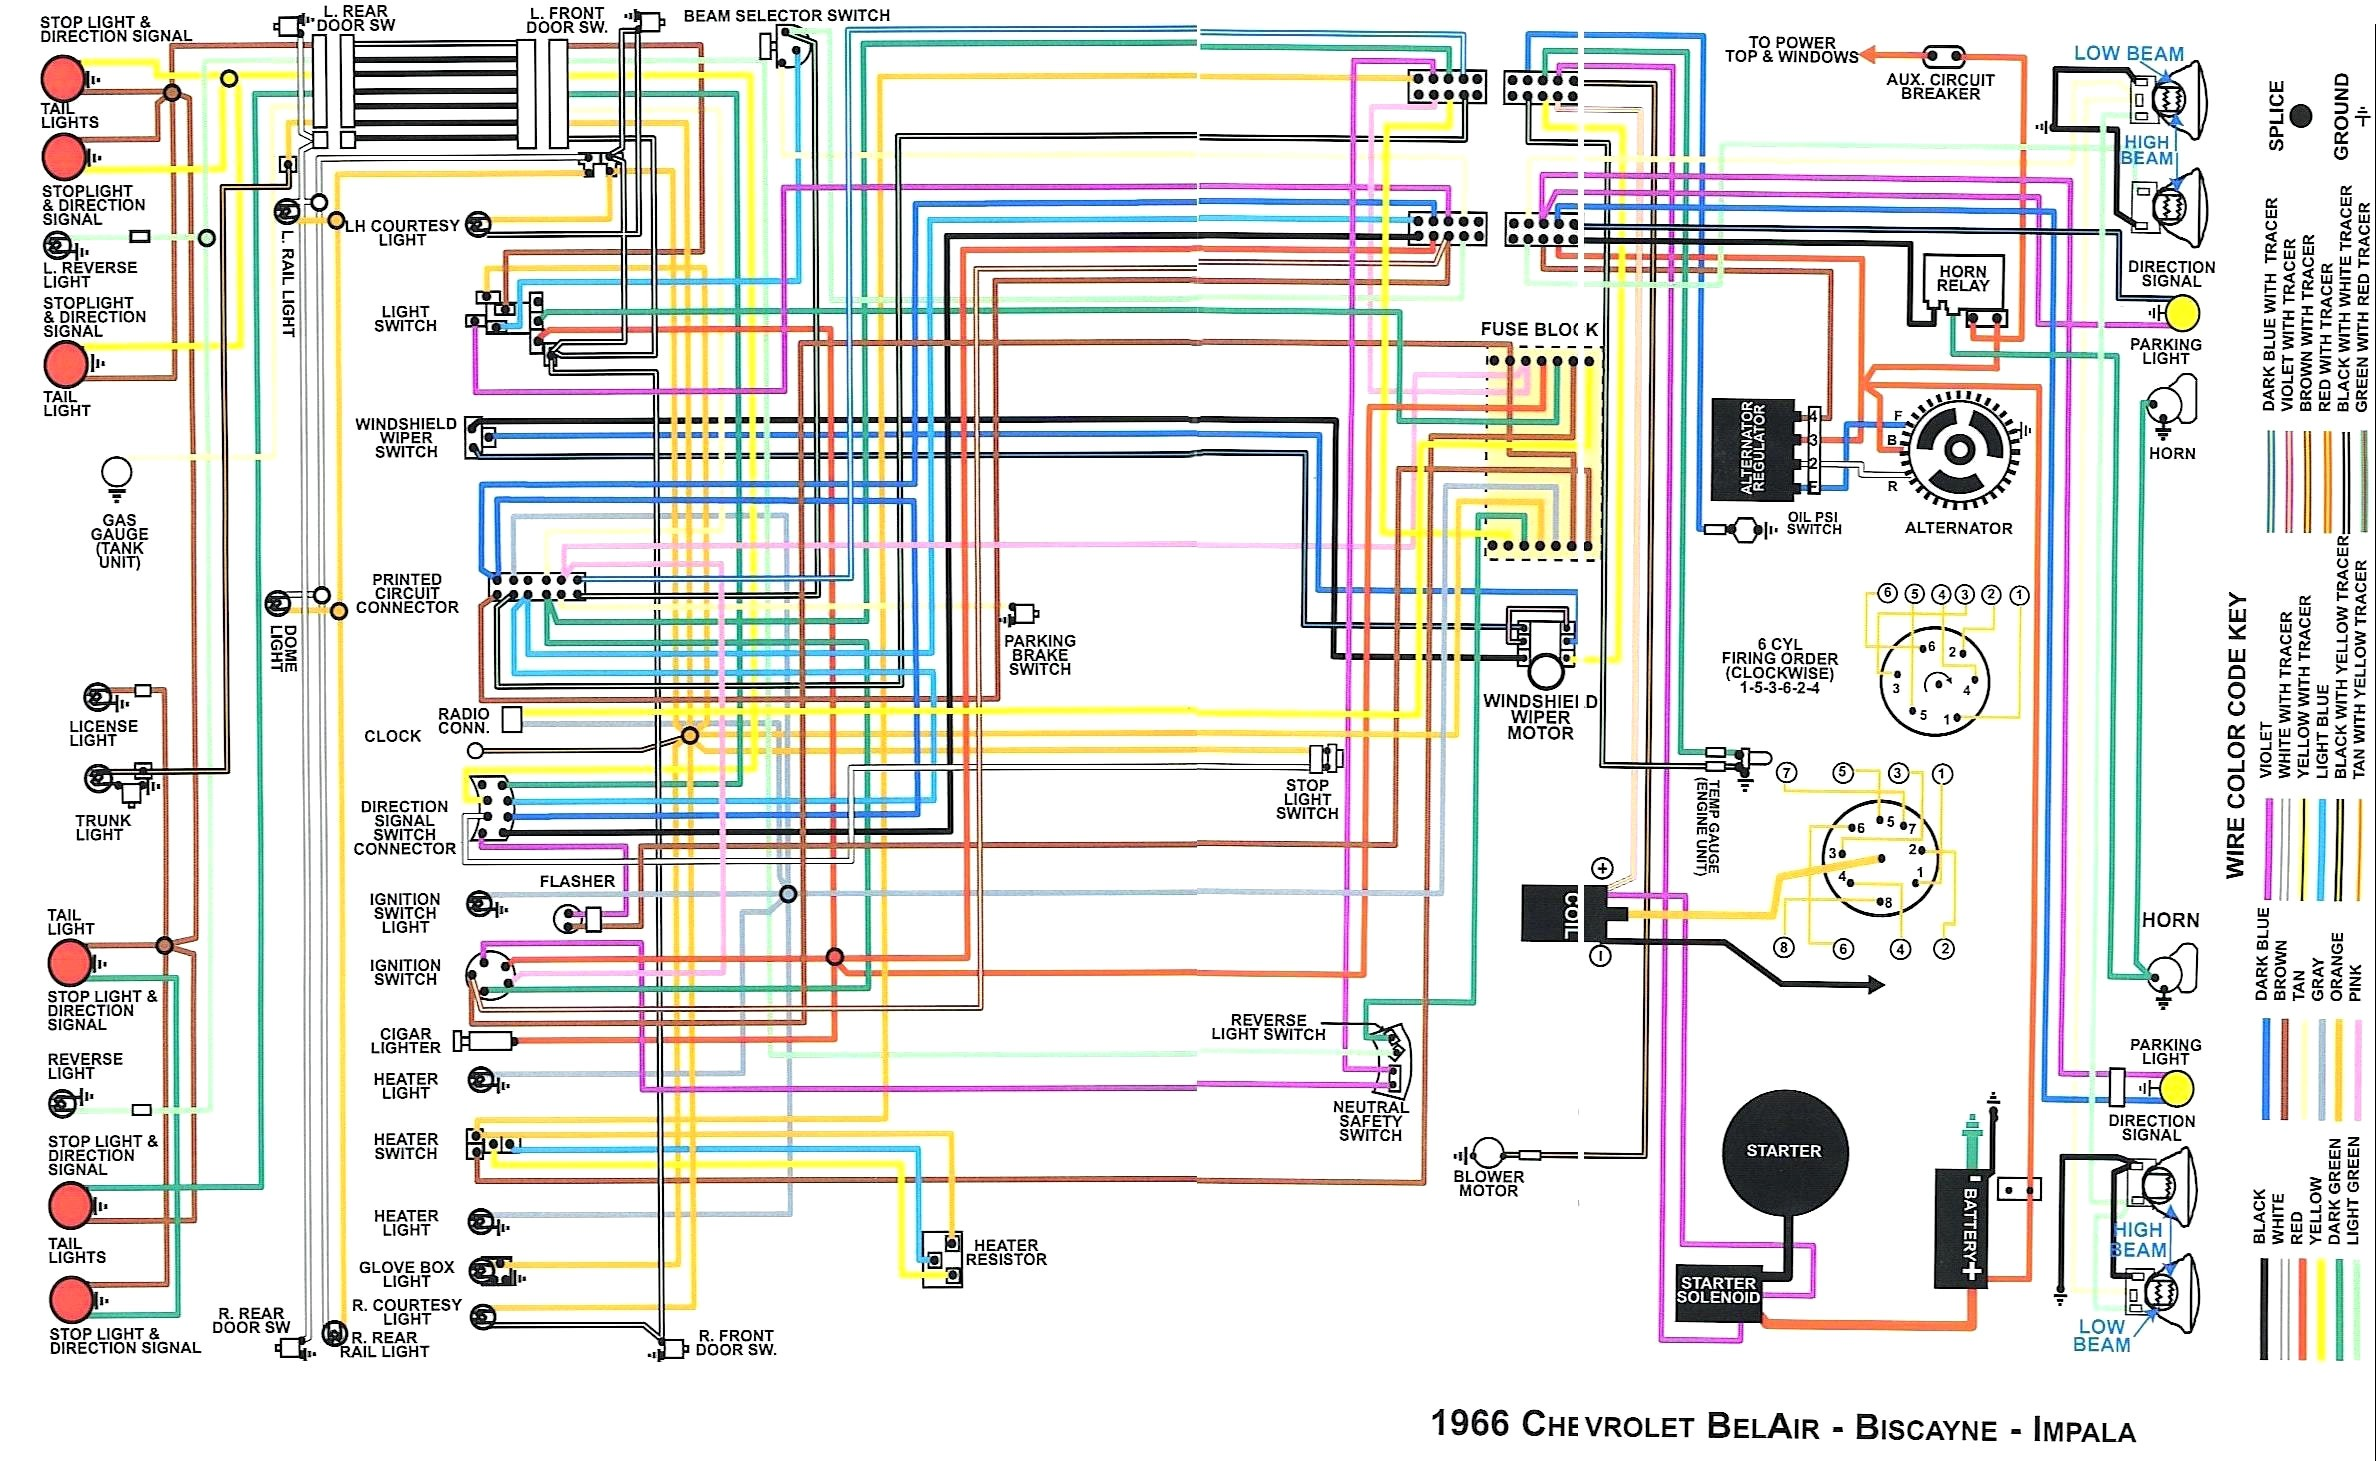 Tremendous 67 Chevelle Ignition Switch Wiring Diagram Wiring Diagram Read Wiring Cloud Intelaidewilluminateatxorg